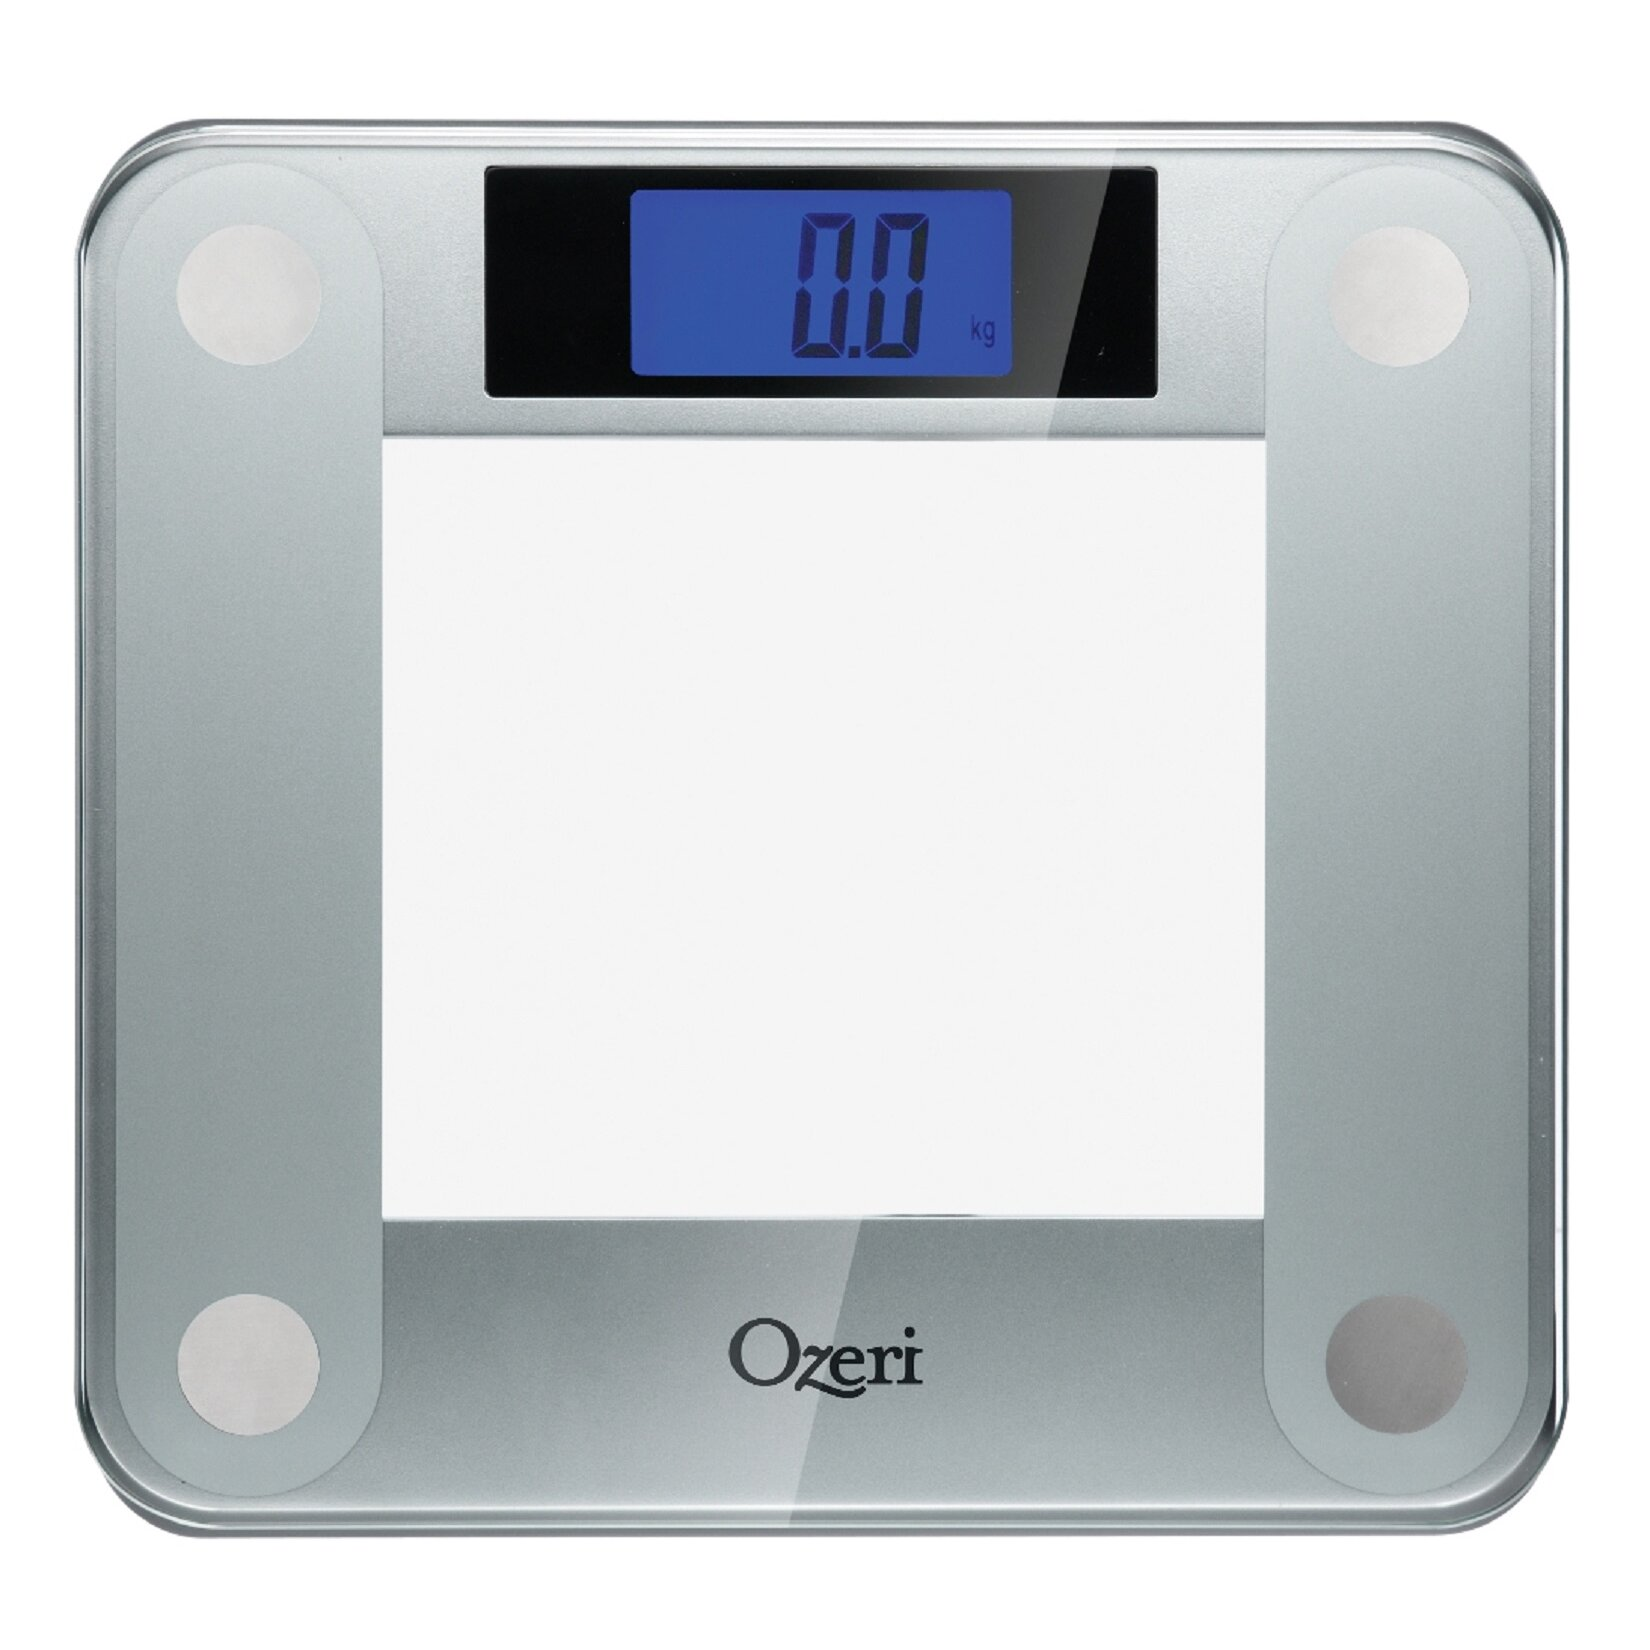 Ozeri Precision Ii 440 Lbs Digital Bath And Weight Scale Reviews Wayfair